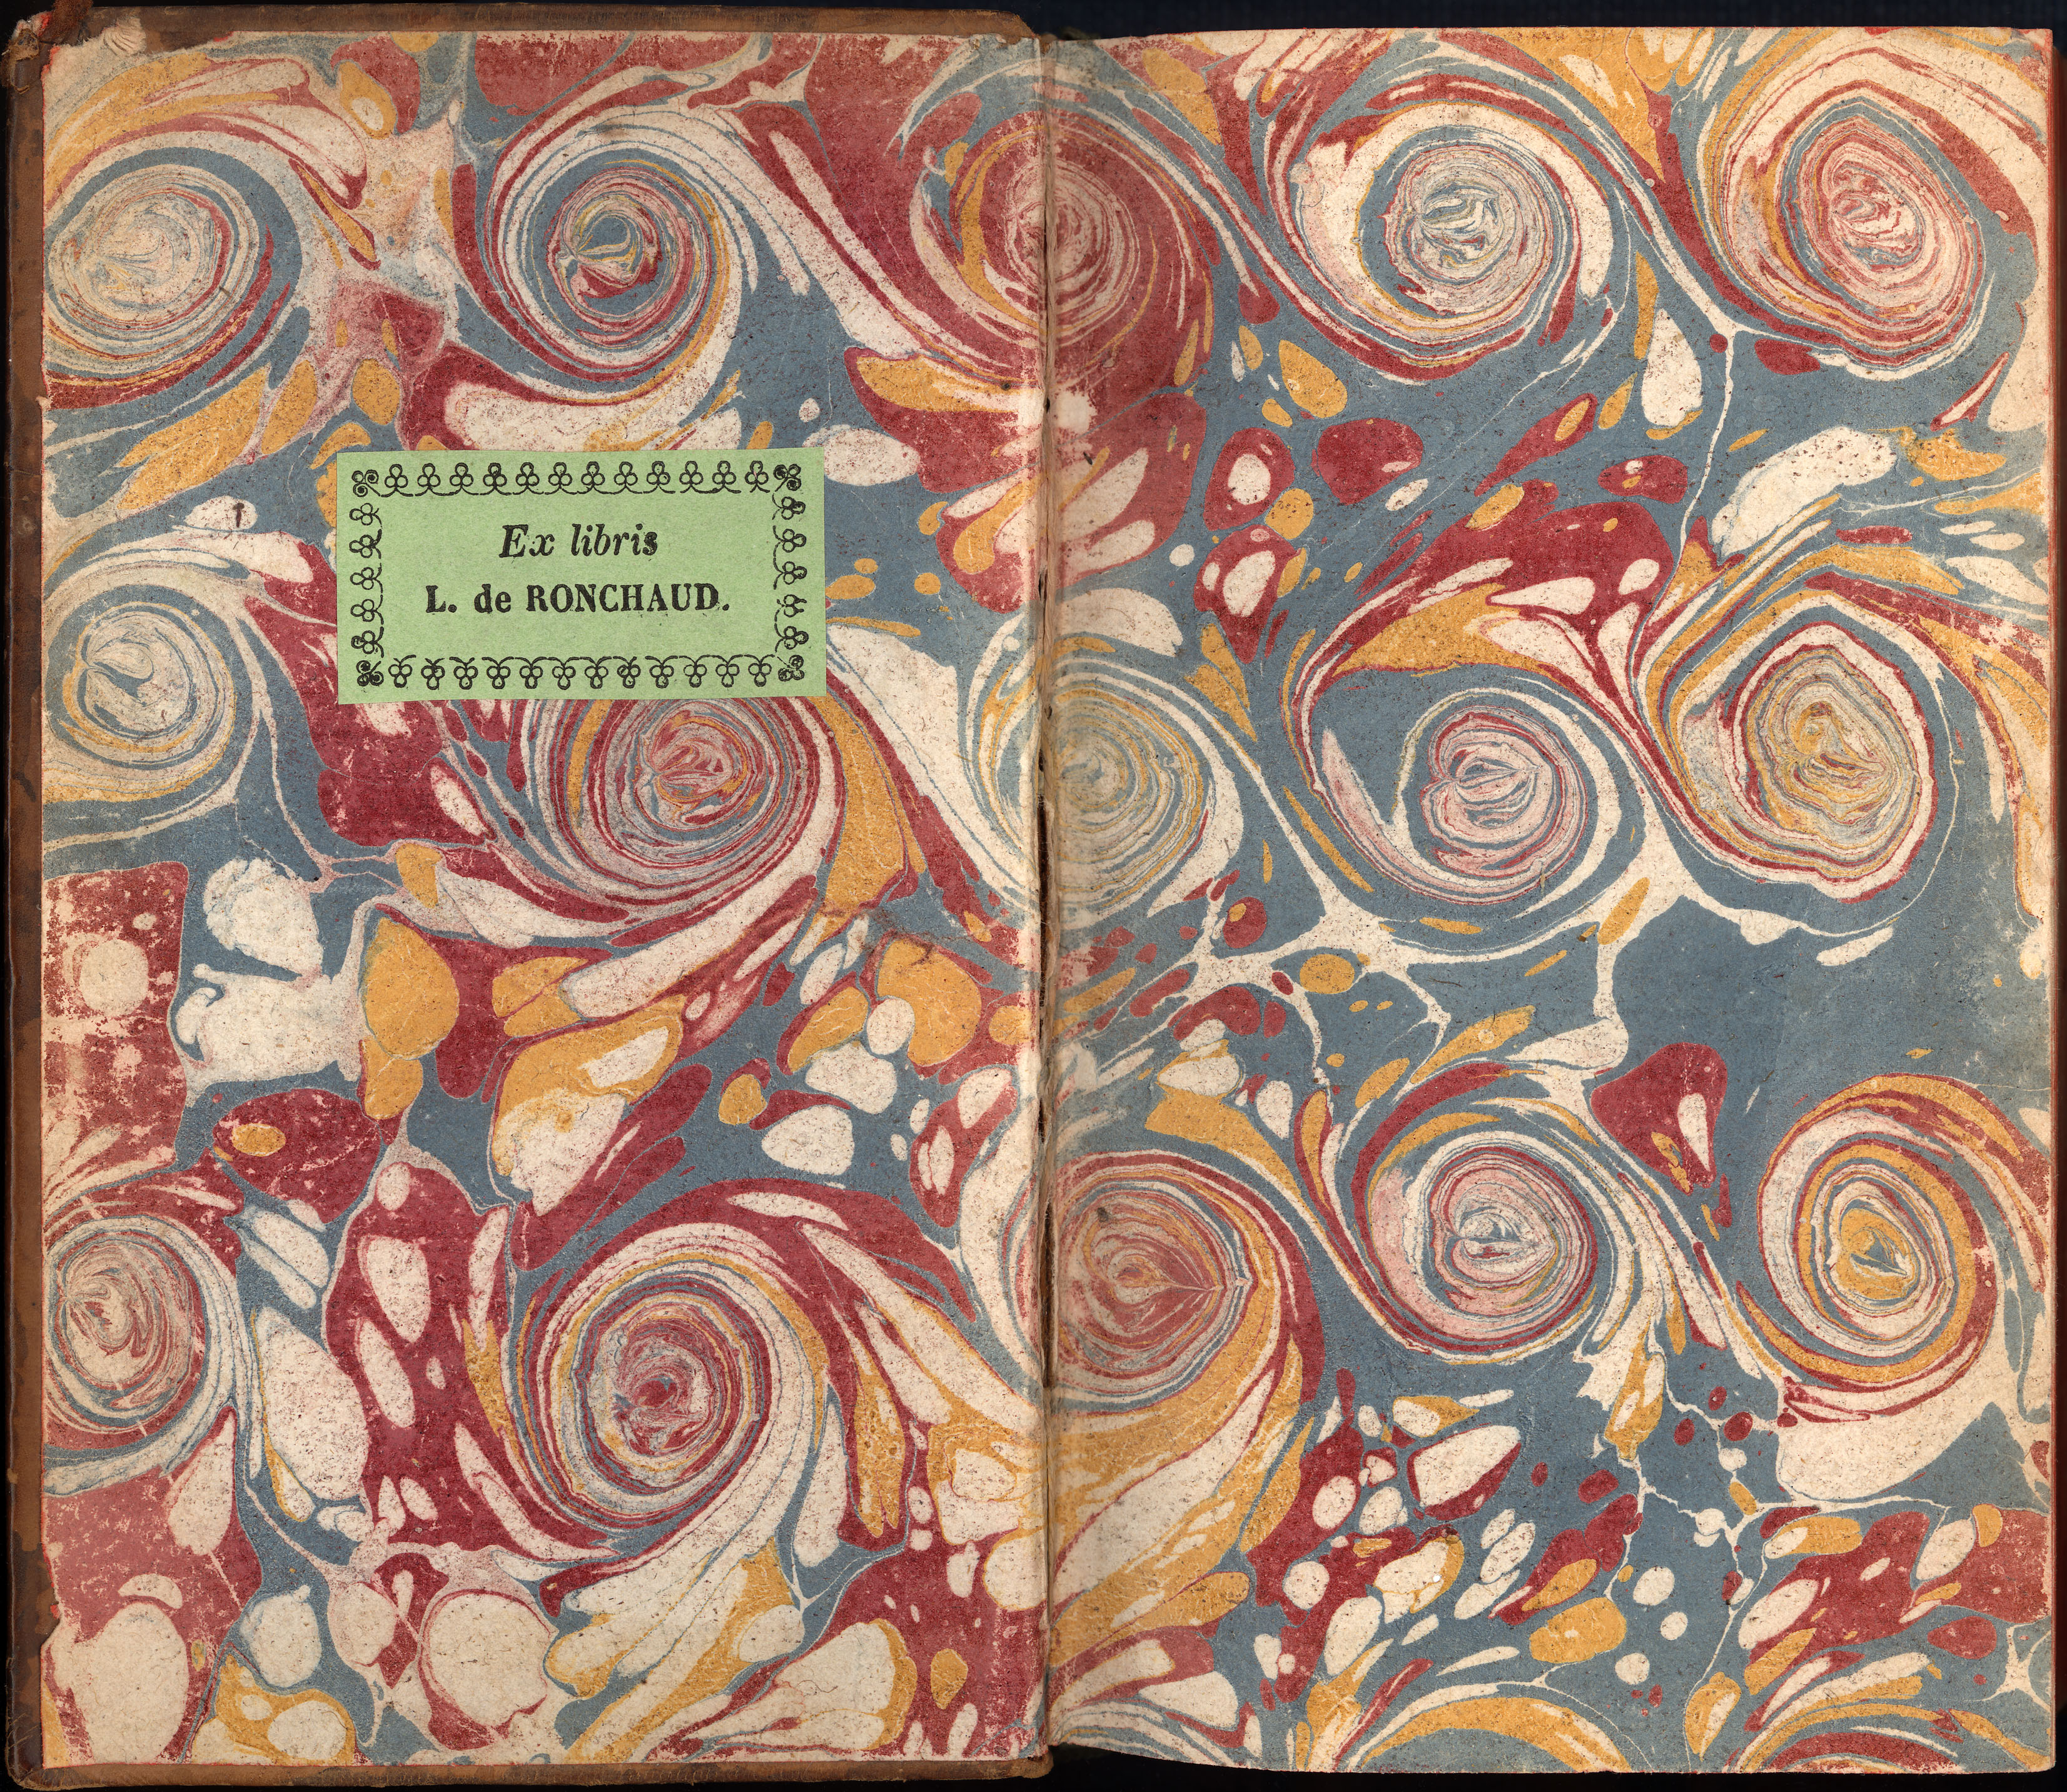 Marbled endpaper from a book bound in France ca. 1735